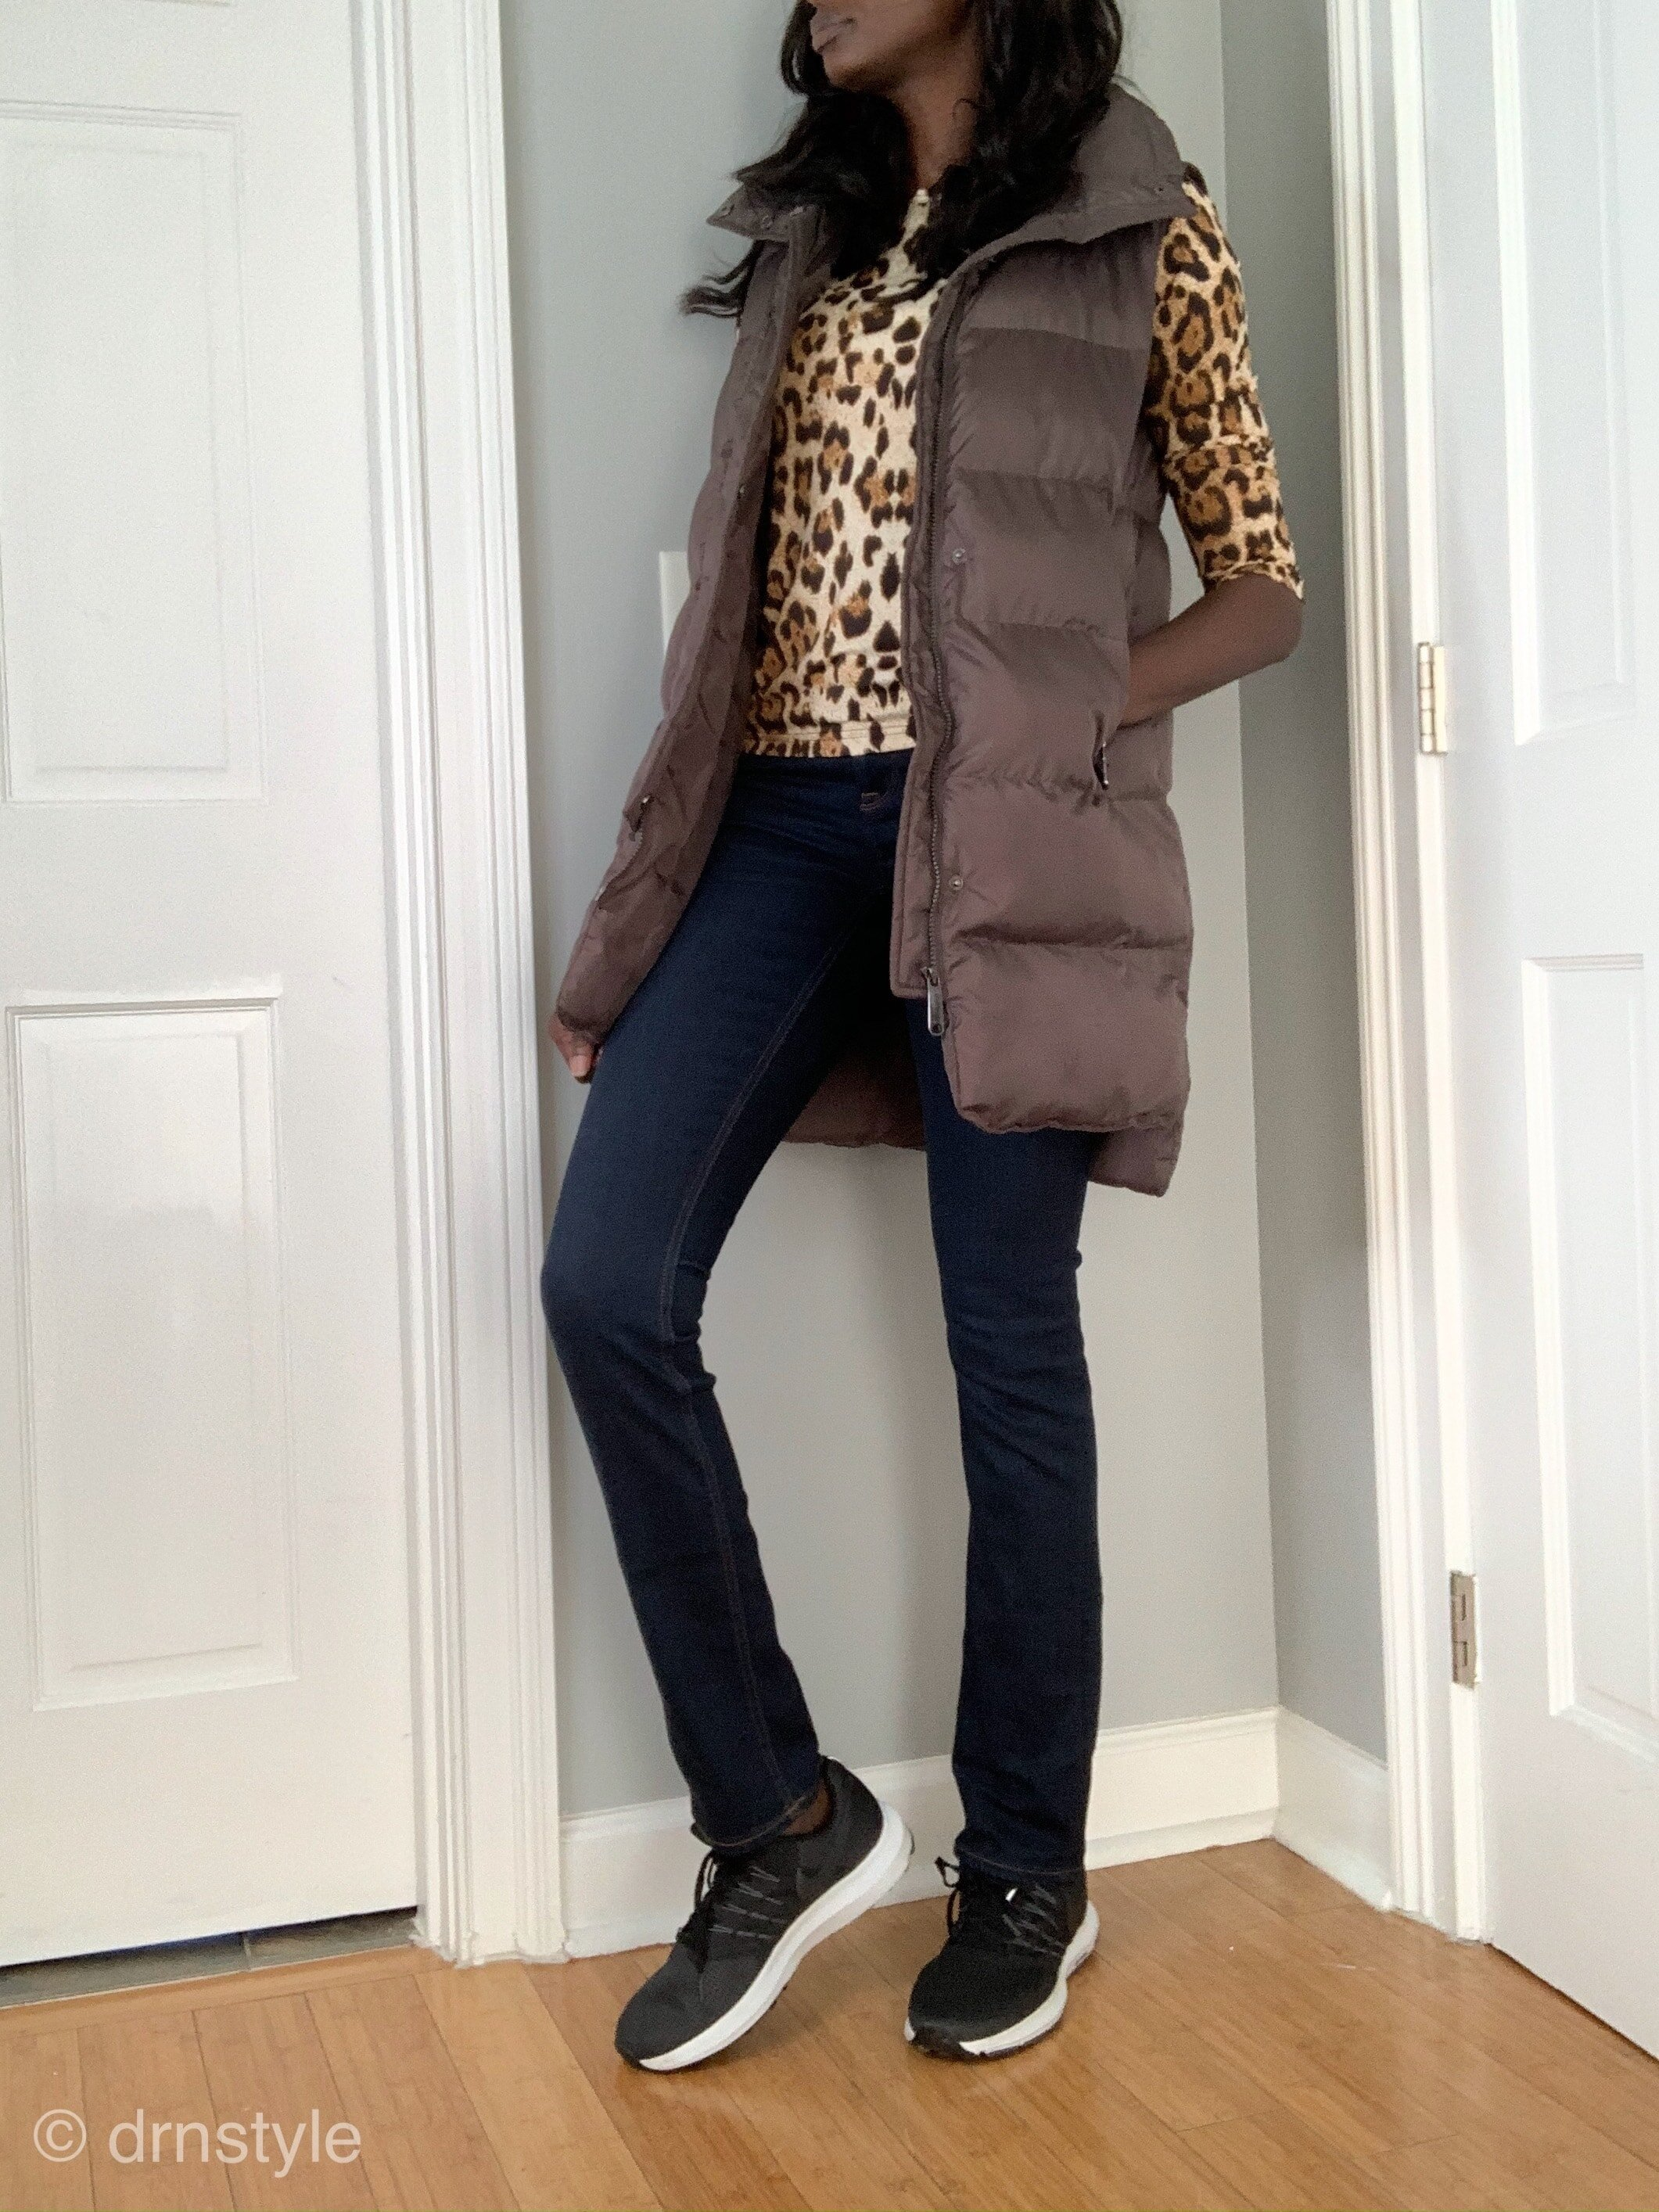 A leopard print top with puffer vest, dark wash jeans and running shoes.